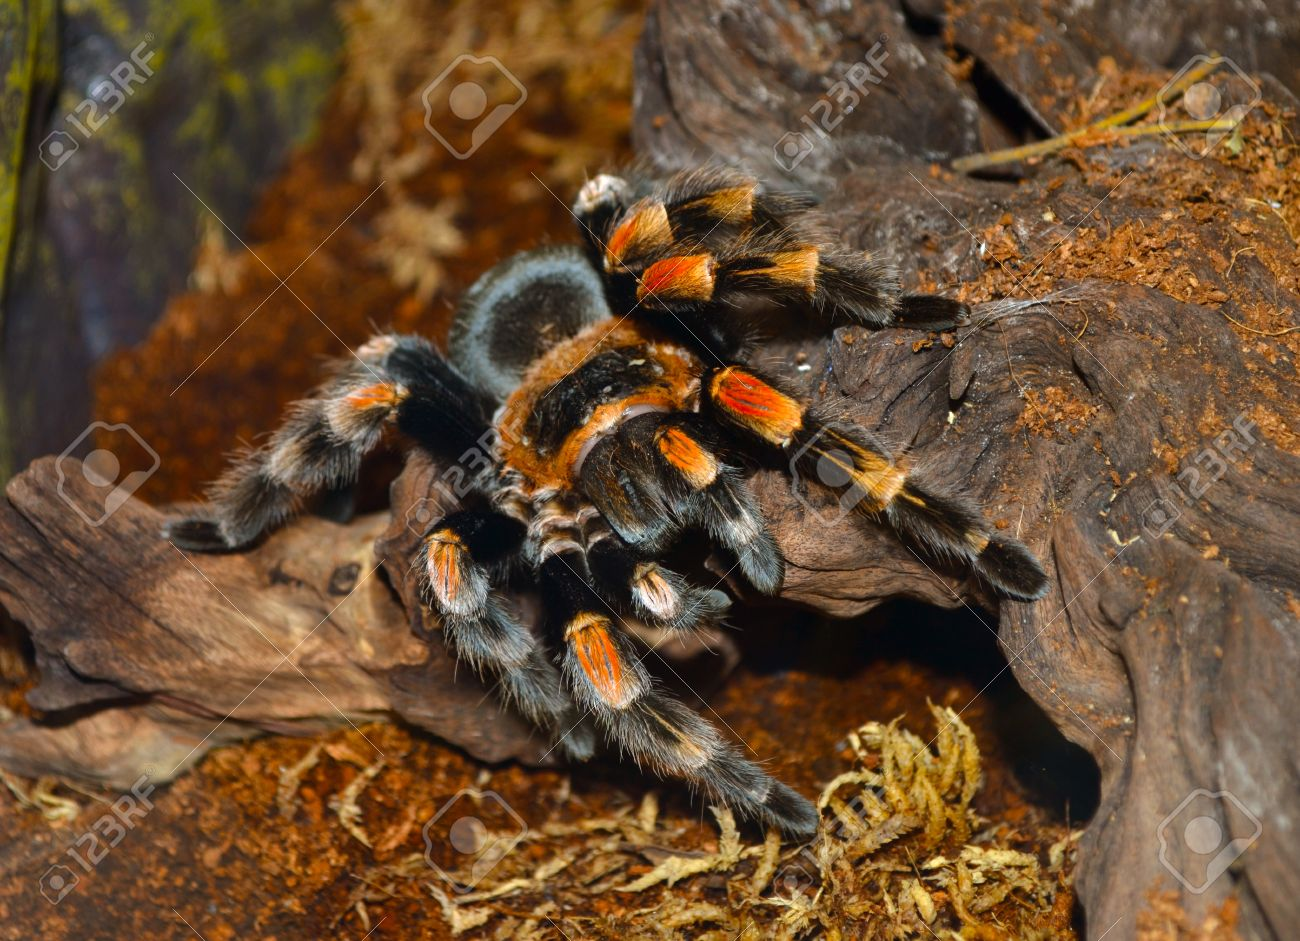 Tarantula Spider Yellow Legs Tarantula S Fang Macro Of The Stock Photo Picture And Royalty Free Image Image 70800602